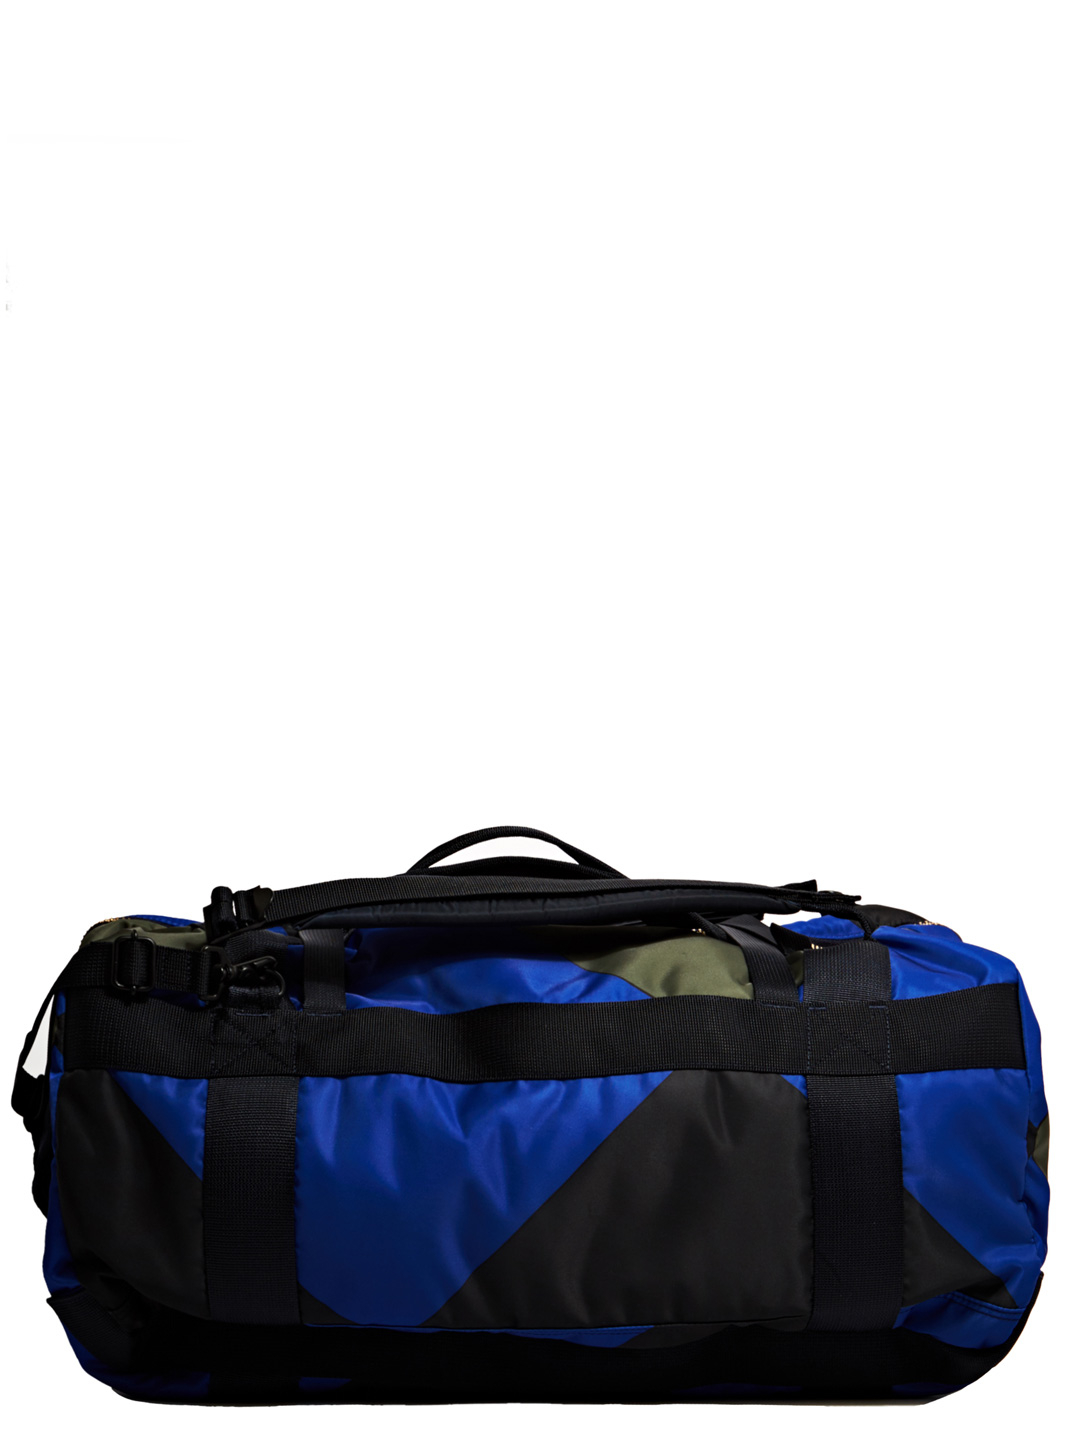 Marni Small Travel Bag In Blue For Men Lyst